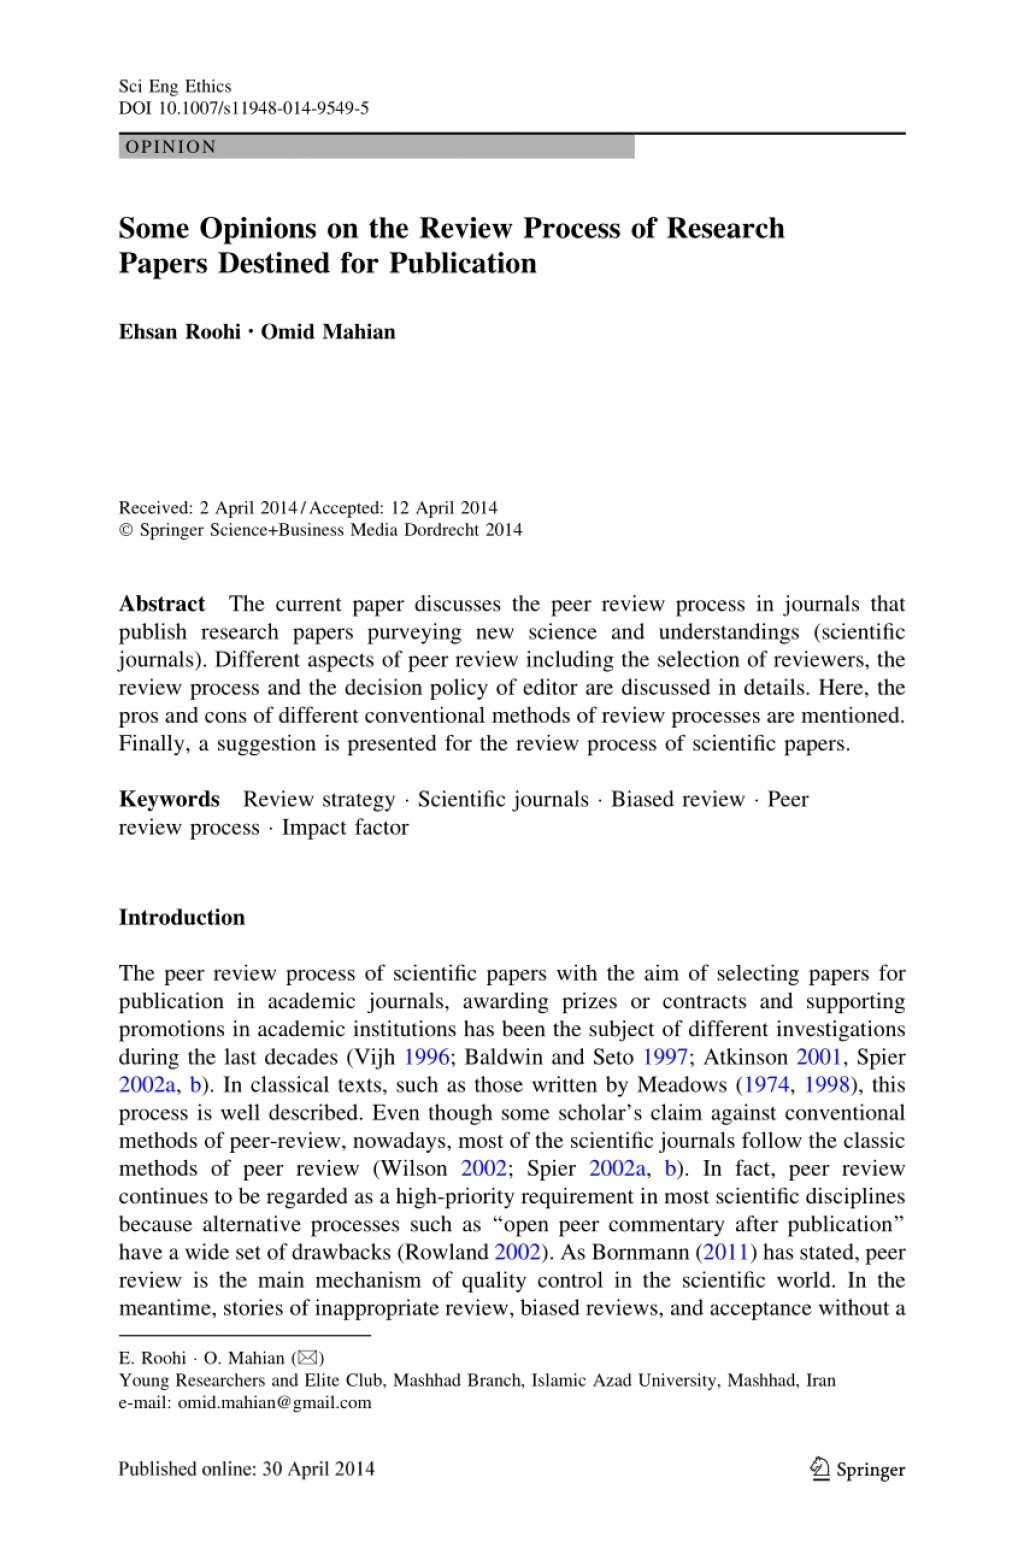 008 How To Publish Research Paper In Springer Papers Online Top Journal Large